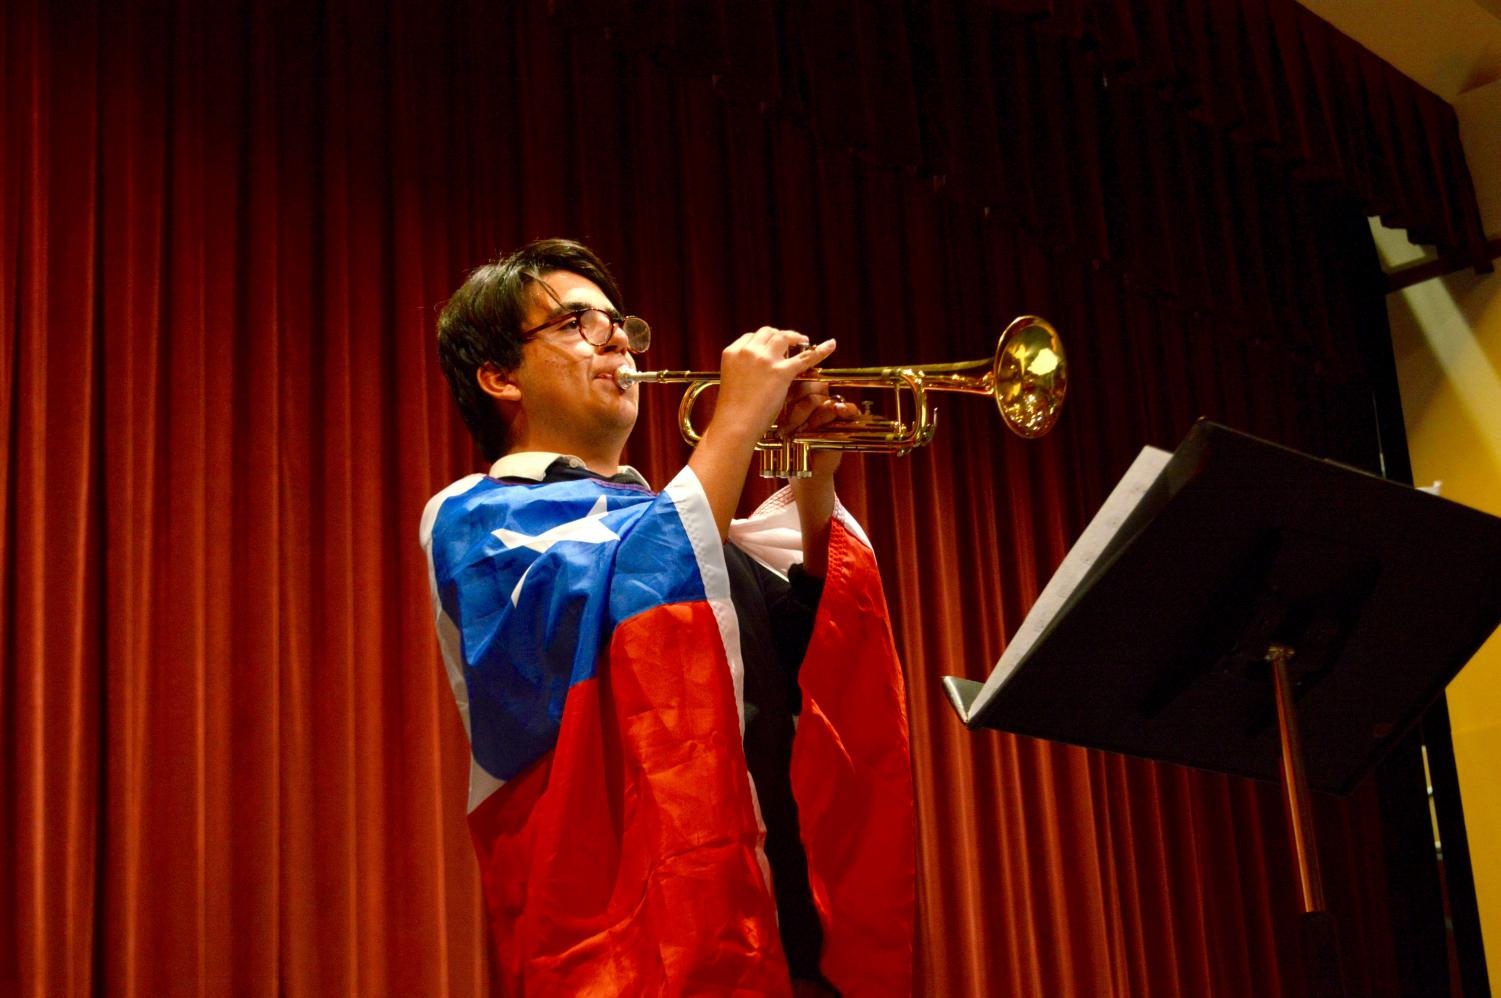 Sophomore+Mauro+Gonzalez+plays+the+trumpet+and+shows+off+the+Chilean+flag.